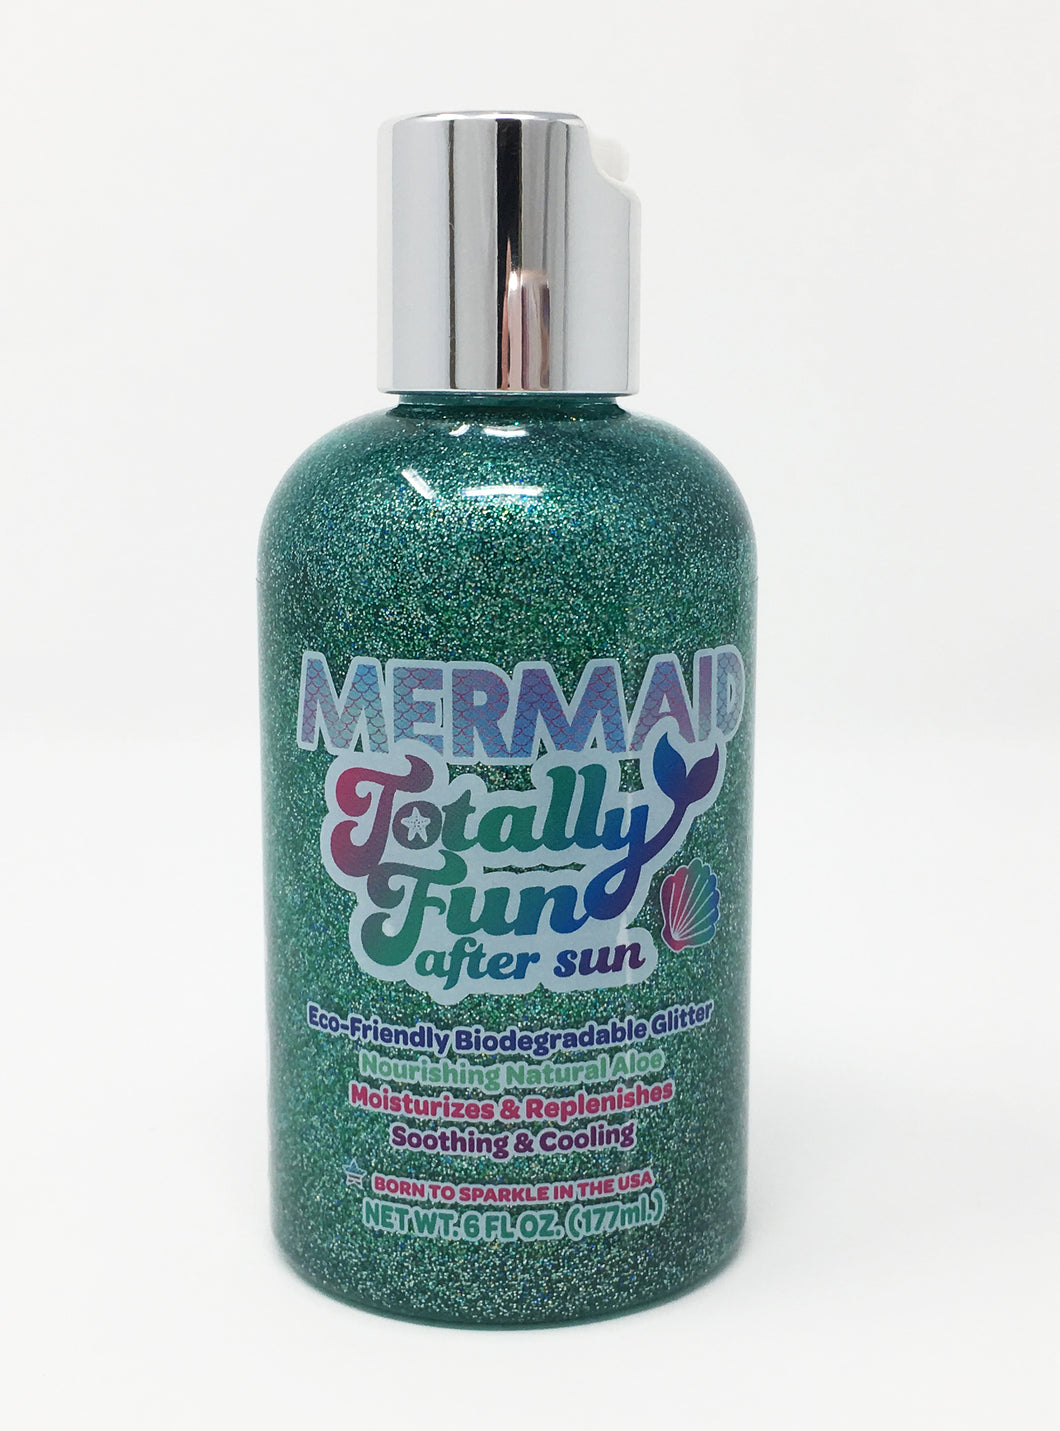 Mermaid Totally Fun Biodegradable Glitter After Sun